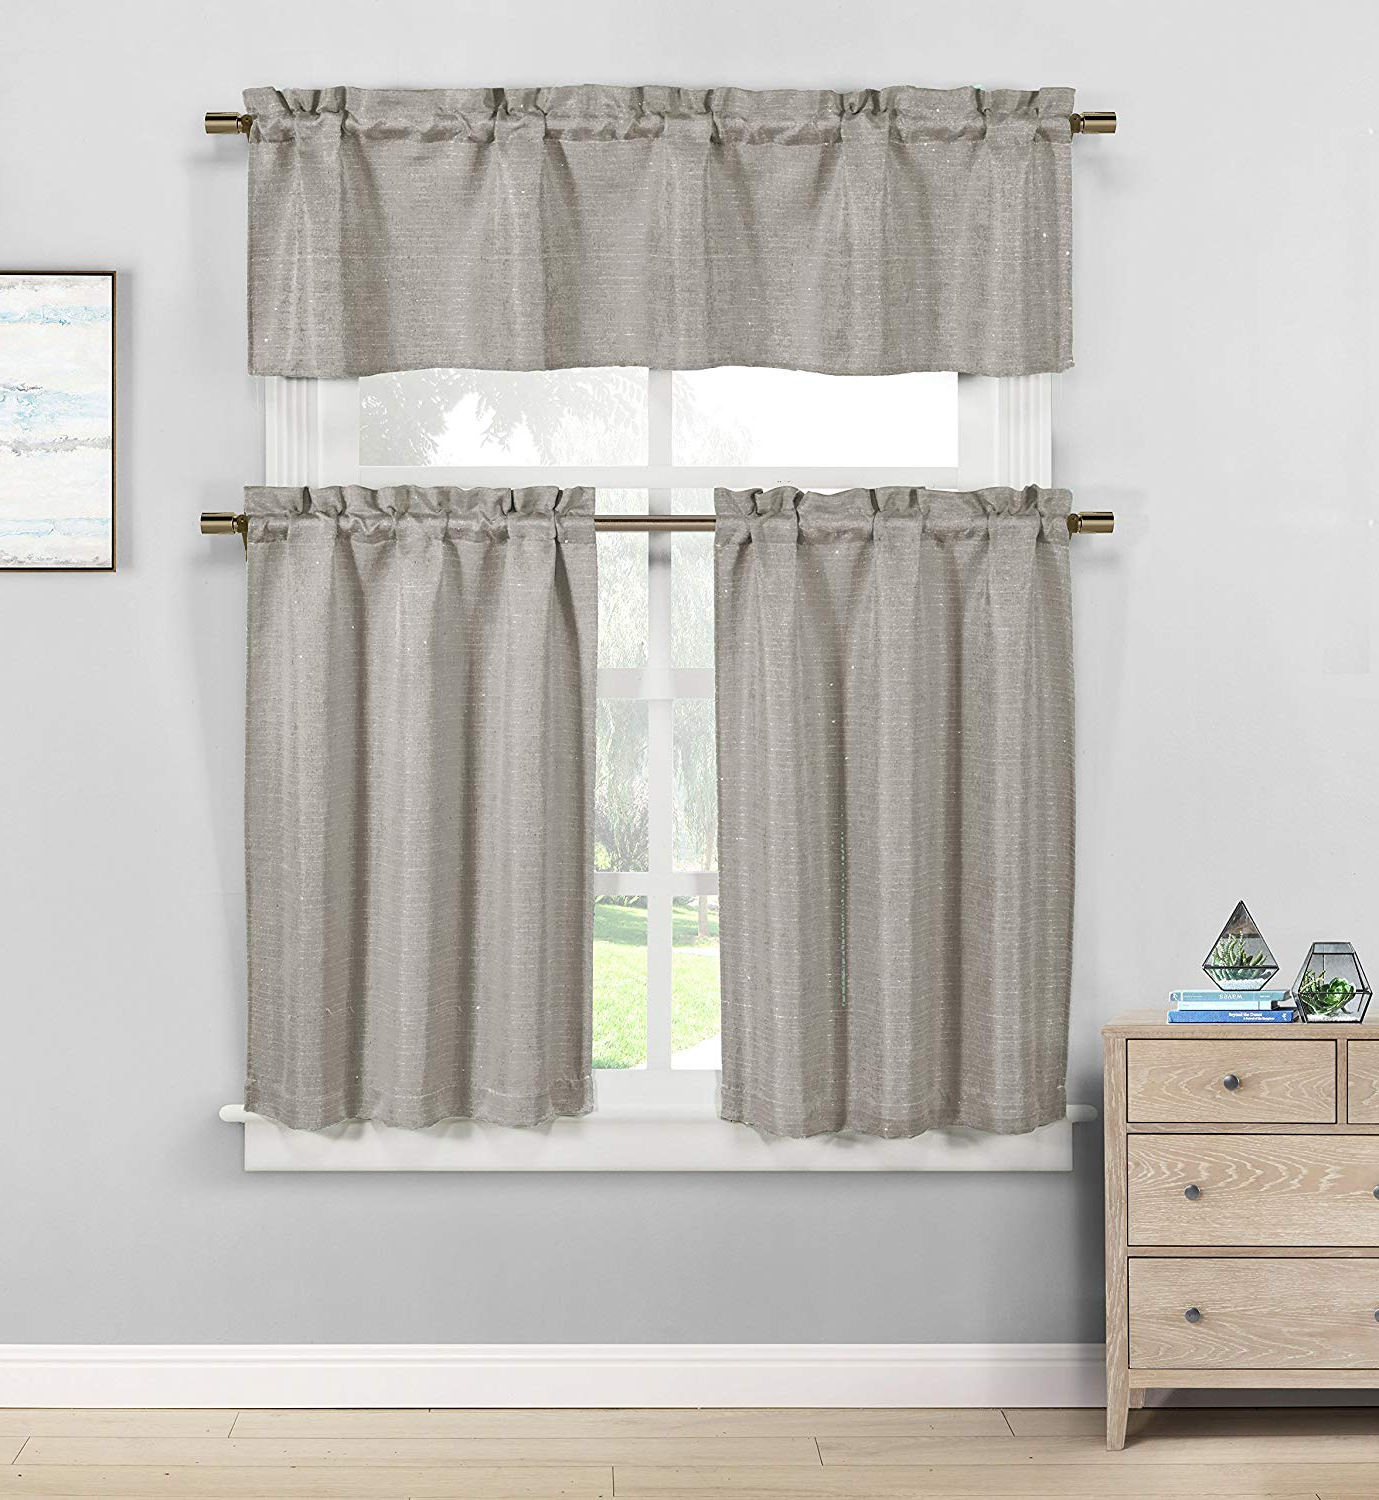 Most Recent Grey Window Curtain Tier And Valance Sets Inside Kensie Jane Linen Textured Sequin Jacquard Kitchen Tier & Valance Set (View 3 of 20)